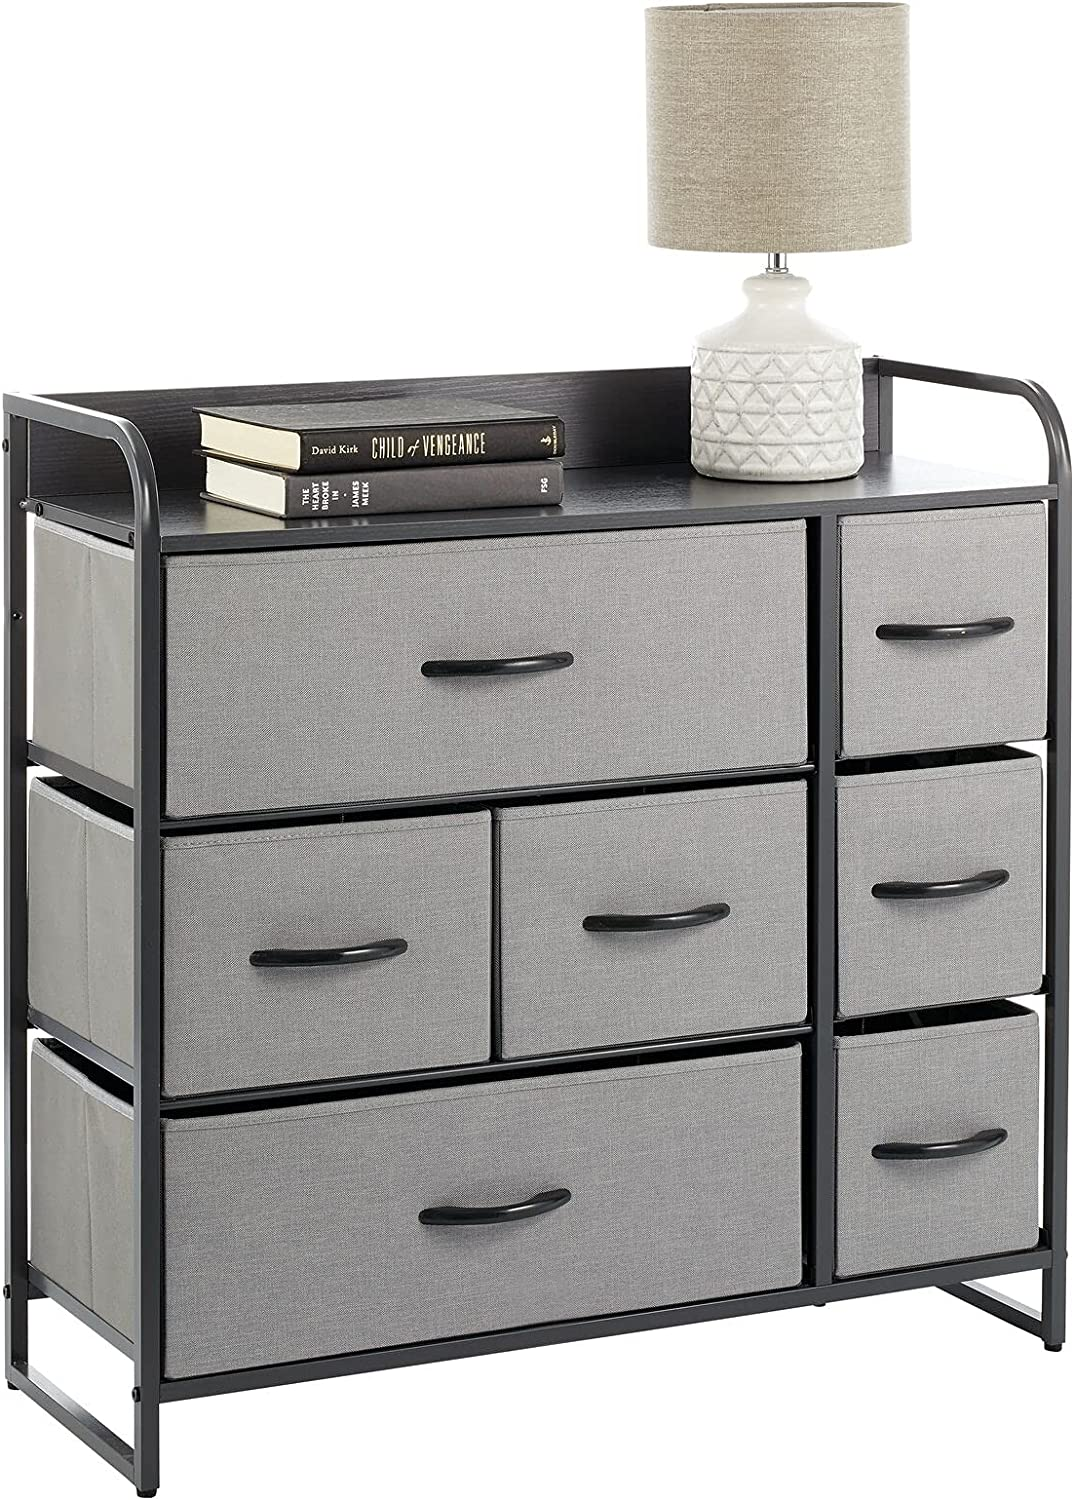 mDesign Wide Chest of Drawers — Bedroom Storage Drawers for Clothes, Socks and More — Landing, Bedroom and Hallway Storage with 7 Drawers and Shelf Top — Grey/Light Grey